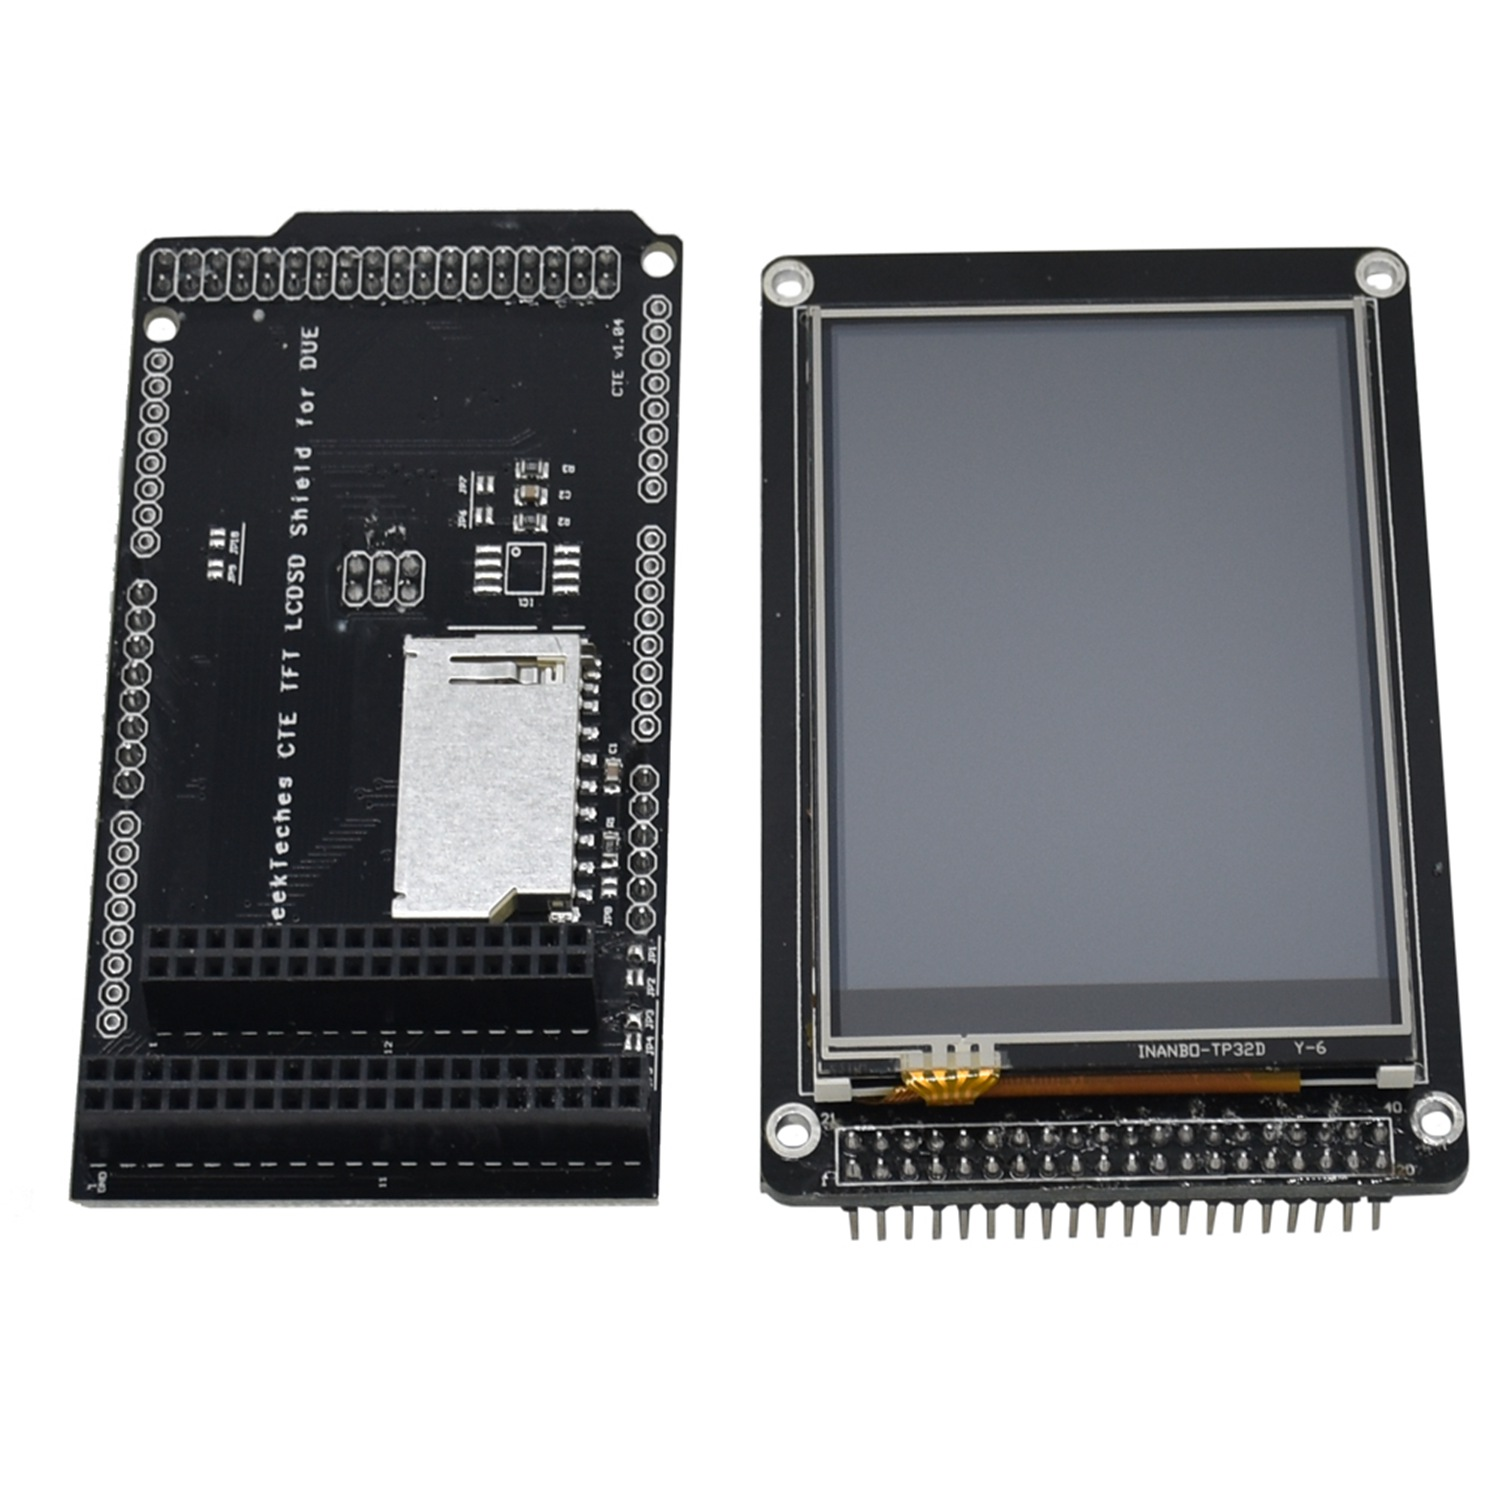 3.2 inch Tft Lcd Display + Tft/Sd Shield For Arduino Mega 2560 Lcd Module Sd Level Translation 2.8 3.2 Due3.2 inch Tft Lcd Display + Tft/Sd Shield For Arduino Mega 2560 Lcd Module Sd Level Translation 2.8 3.2 Due